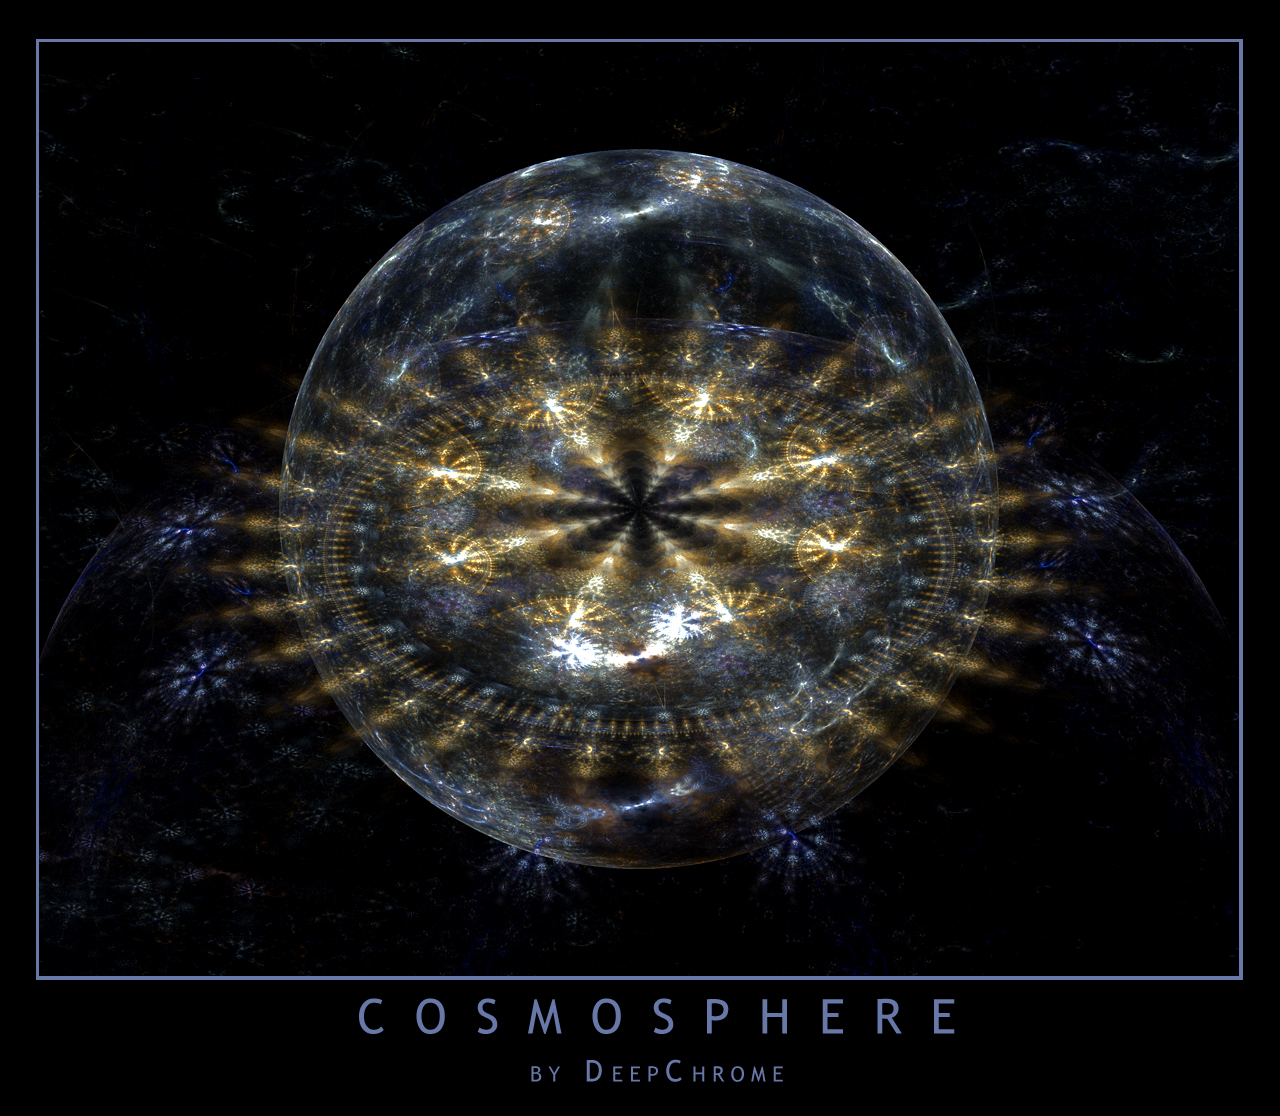 COSMOSPHERE by DeepChrome